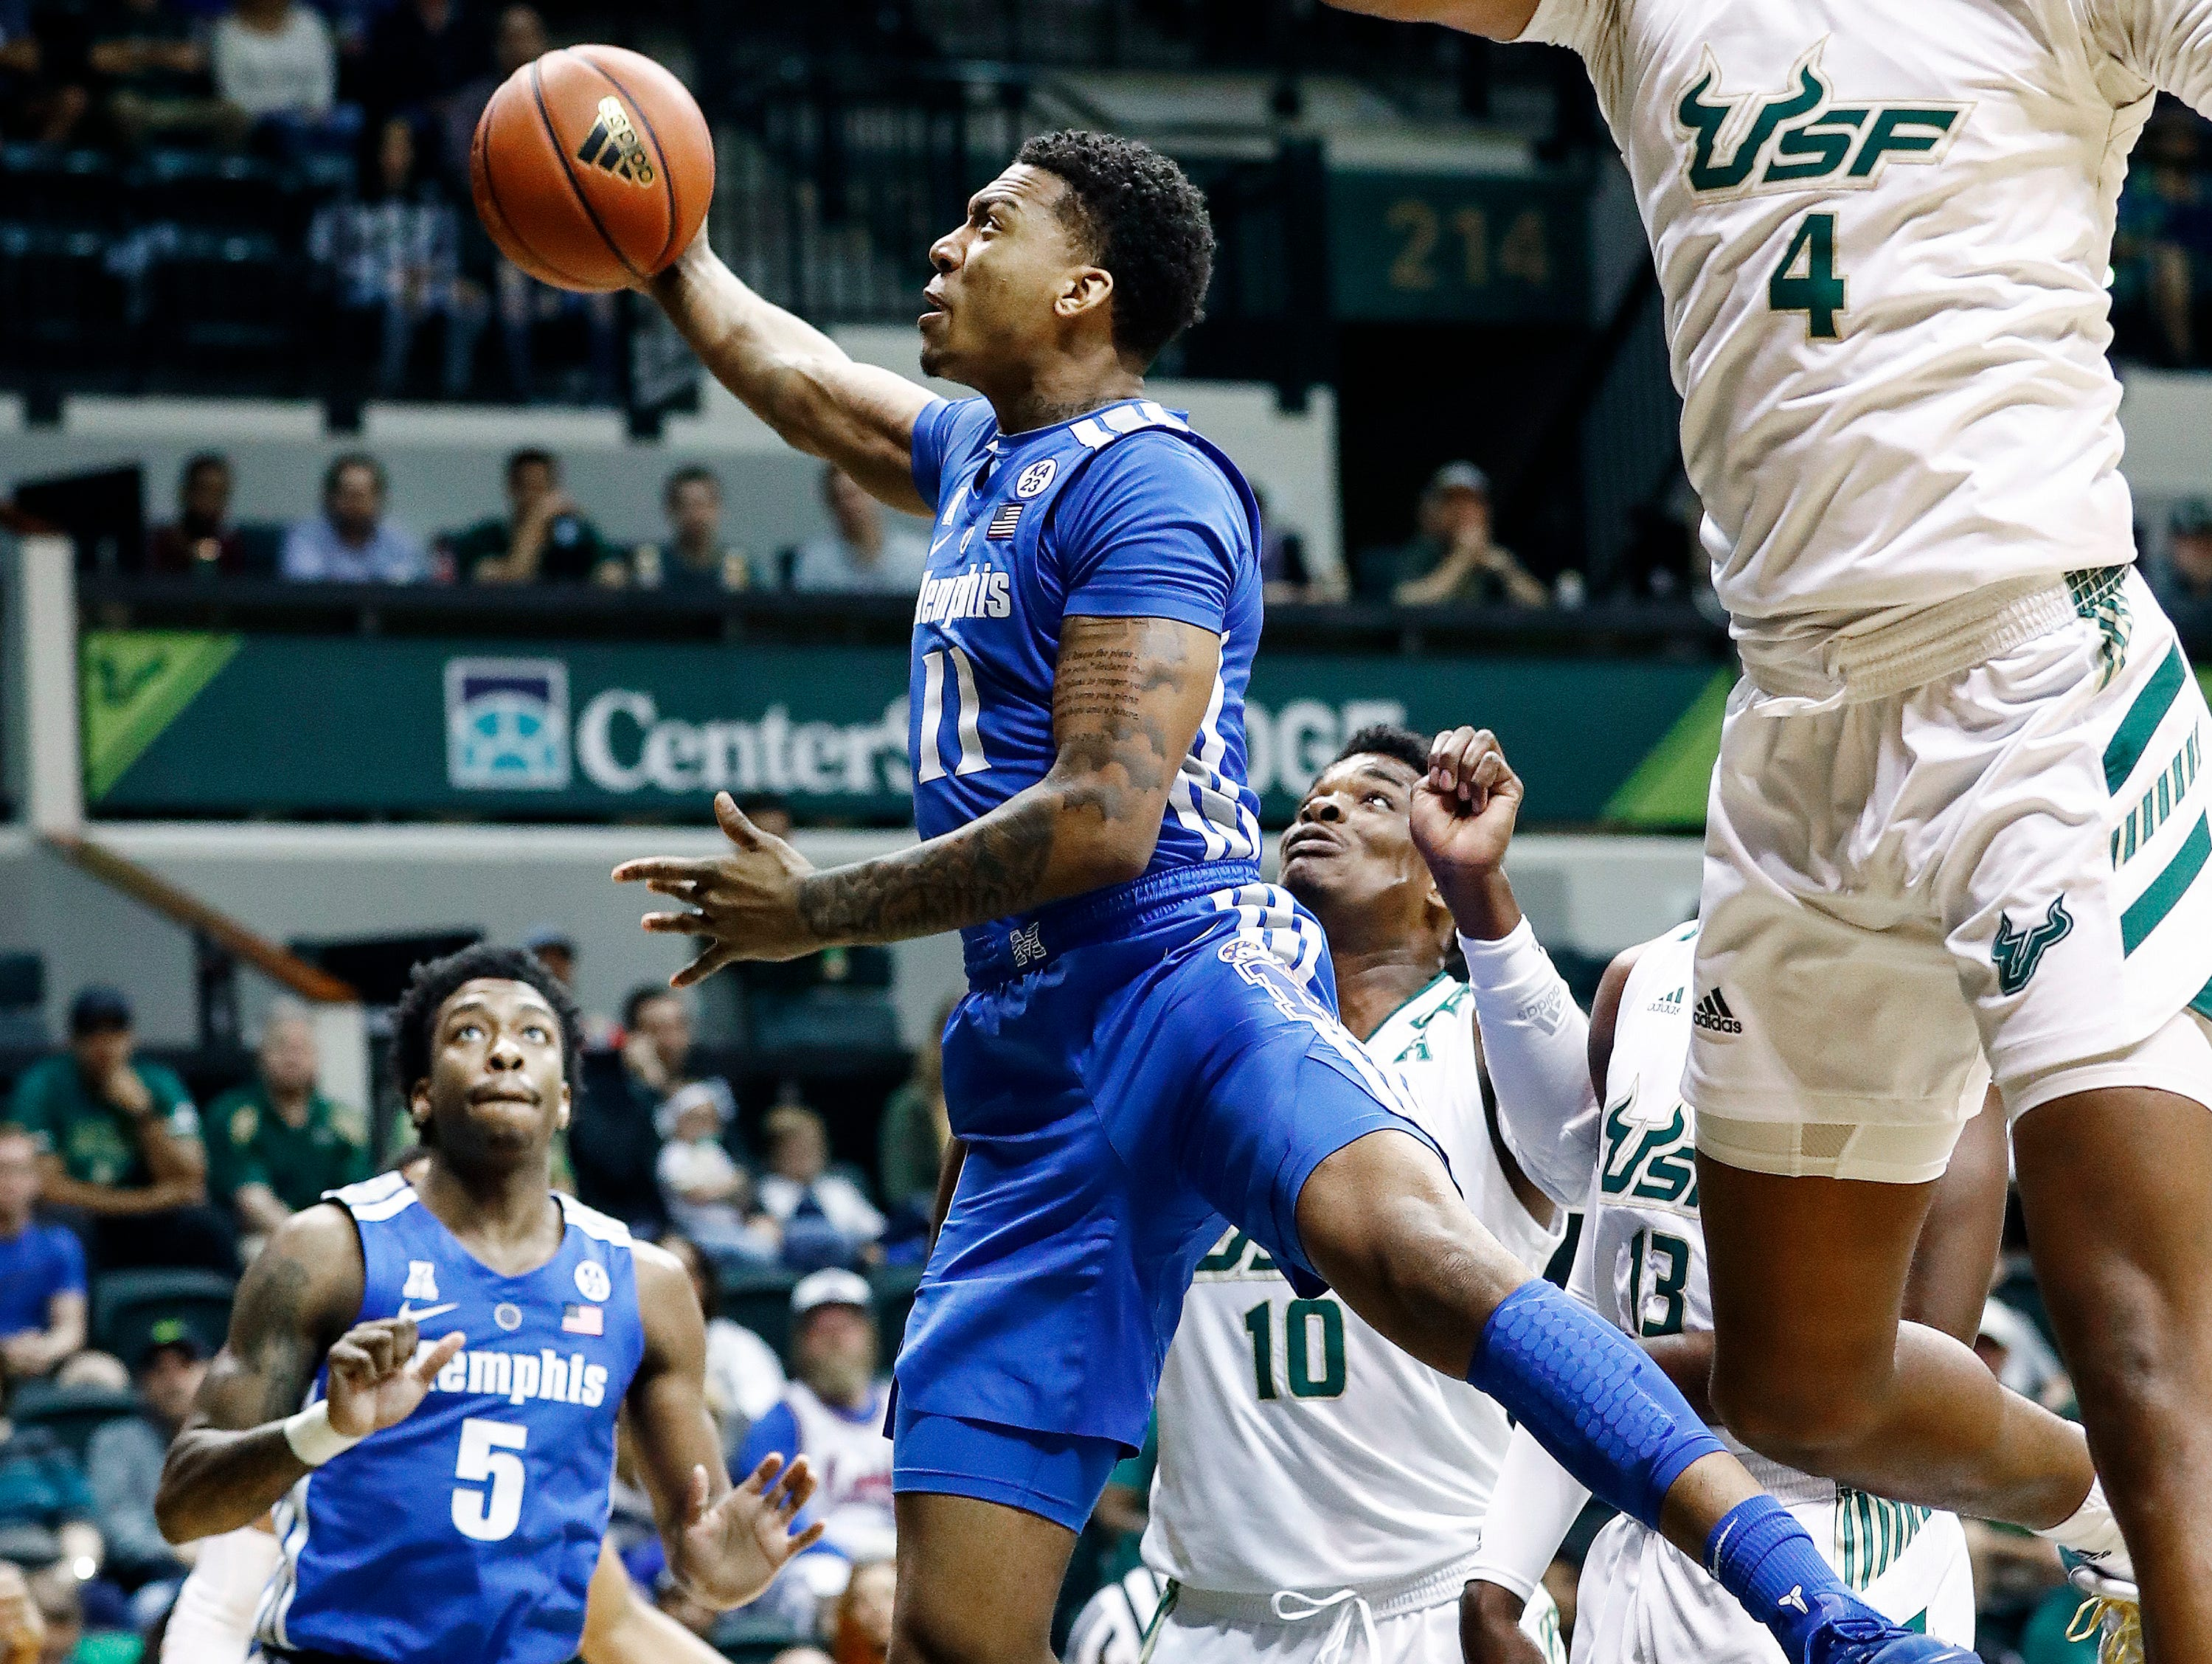 Memphis guard Antwann Jones (middle) misses a layup against the USF defense during action in Tampa, Saturday, February 2, 2019.